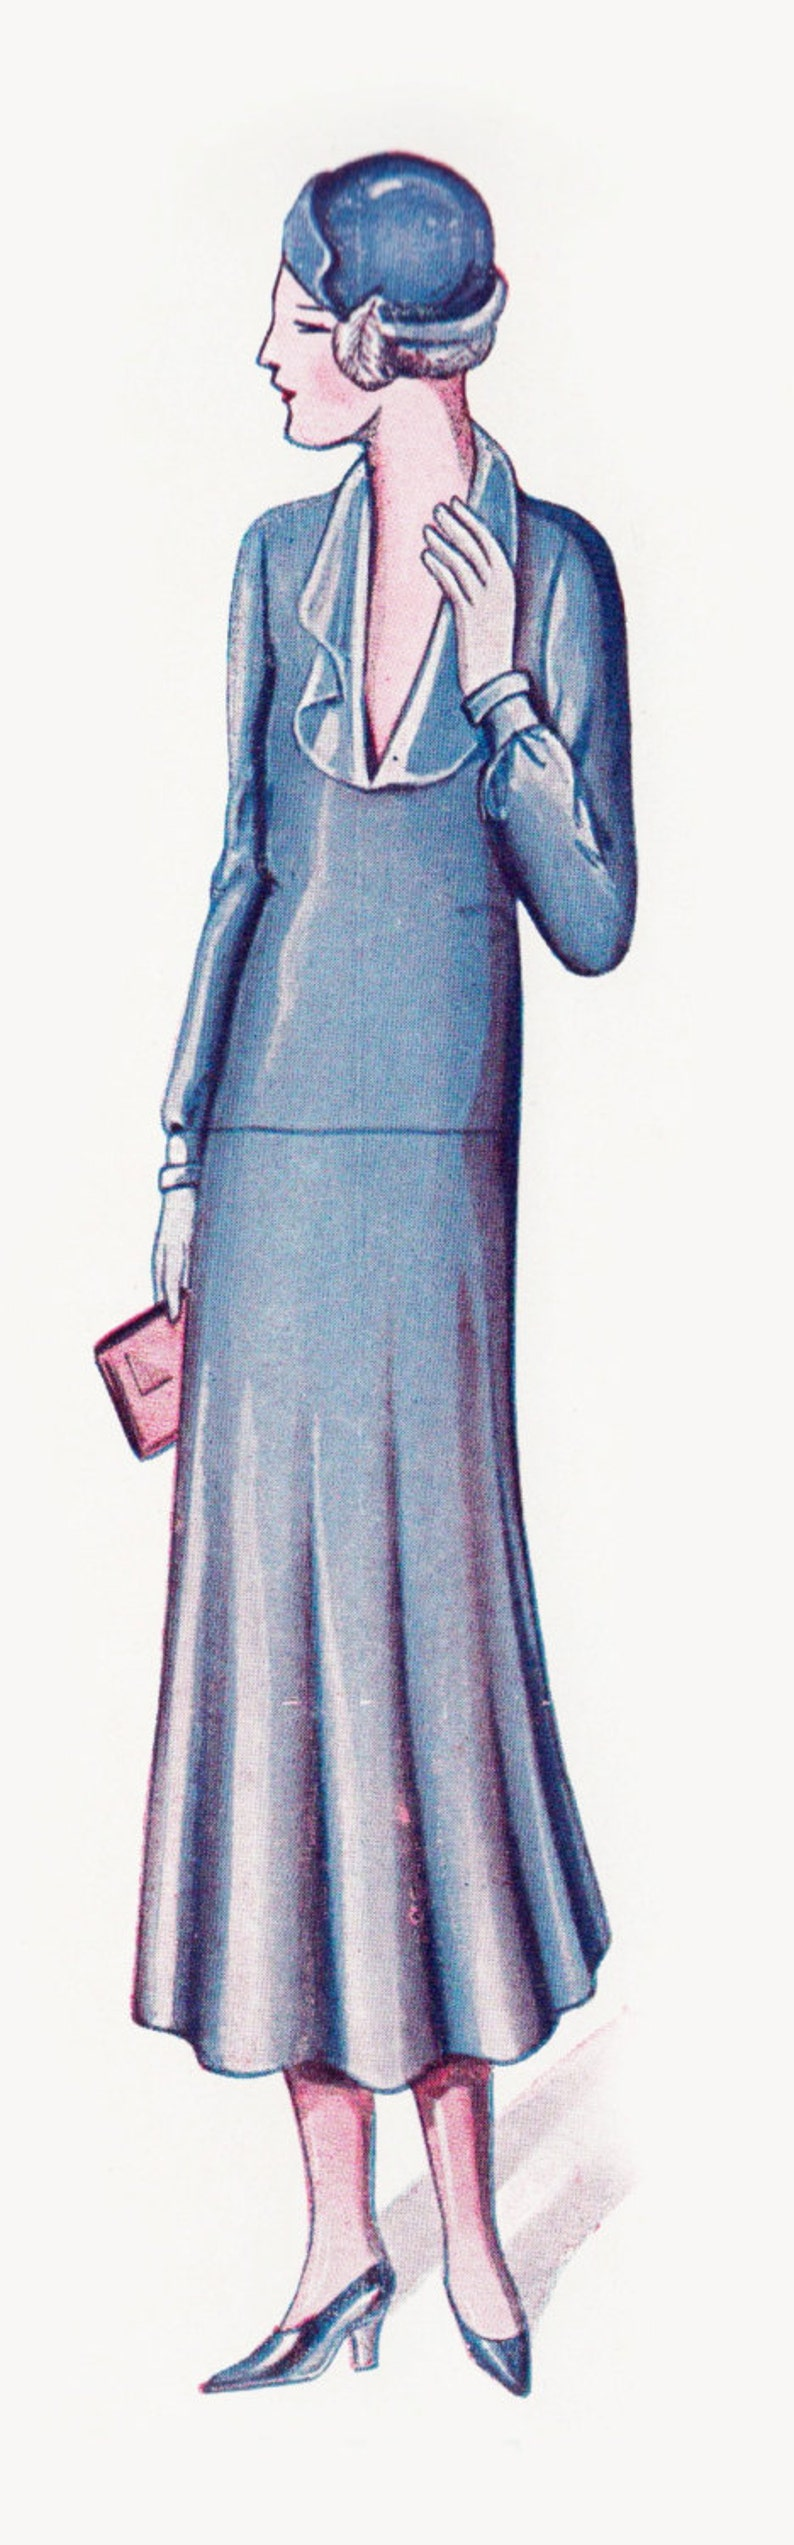 1930s Sewing Patterns- Dresses, Pants, Tops Vintage Sewing Pattern 1920s 1930s Dress in Any Size - Plus Size- Draft at Home Pattern Depew F-311 -INSTANT DOWNLOAD- $8.50 AT vintagedancer.com